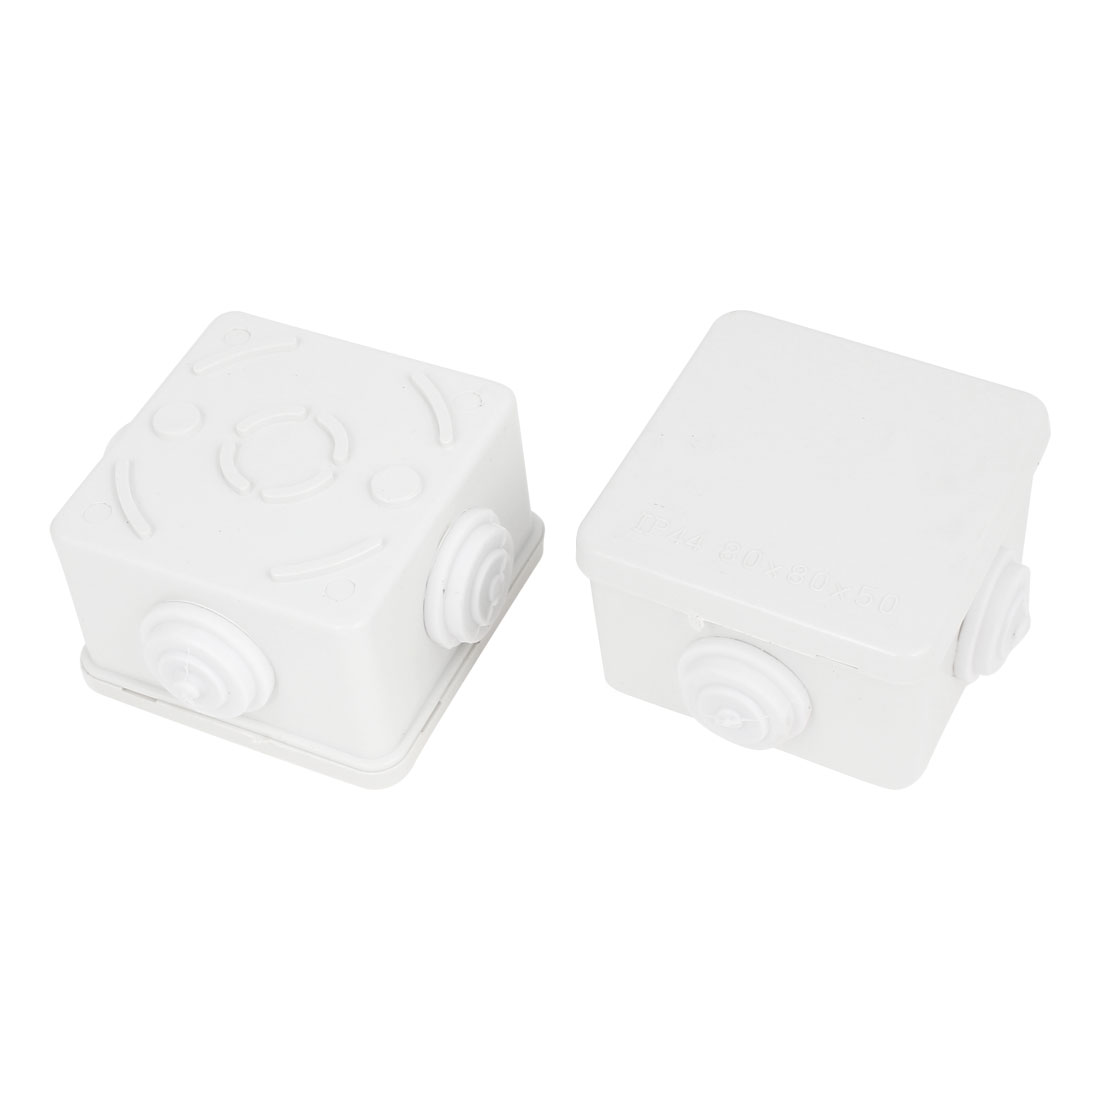 2 Pcs ABS IP44 Waterproof Square Junction Box Plain Press on Lid 75 x 75 x 50mm